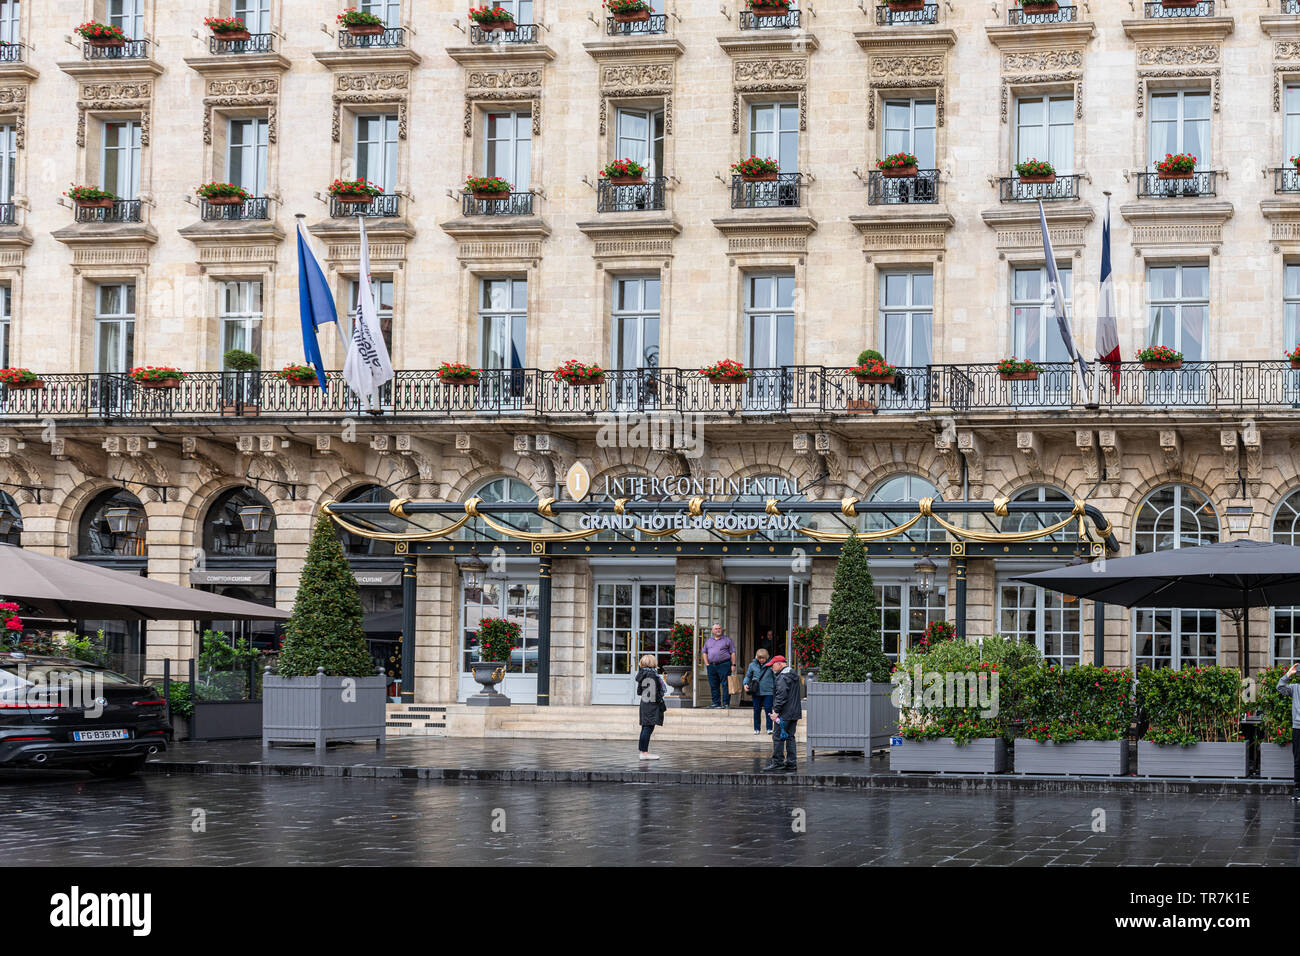 Intercontinental Grand Hotel in Bordeaux, France with Neoclassical Facade - Stock Image